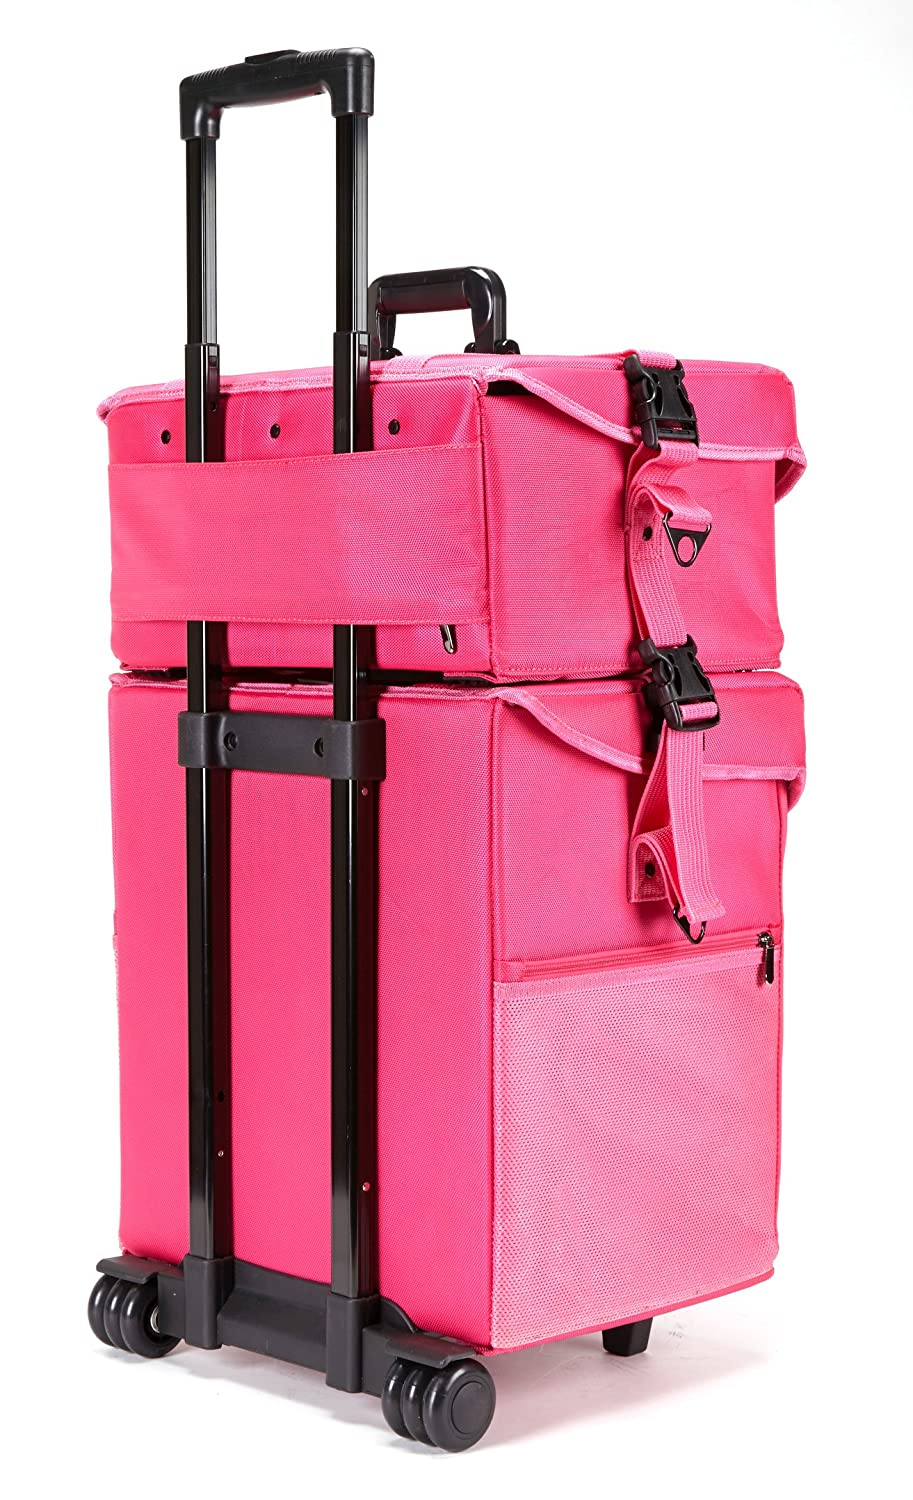 Suitcase With Drawers Amazoncom Seya 2 In 1 Professional Makeup Artist Rolling Makeup